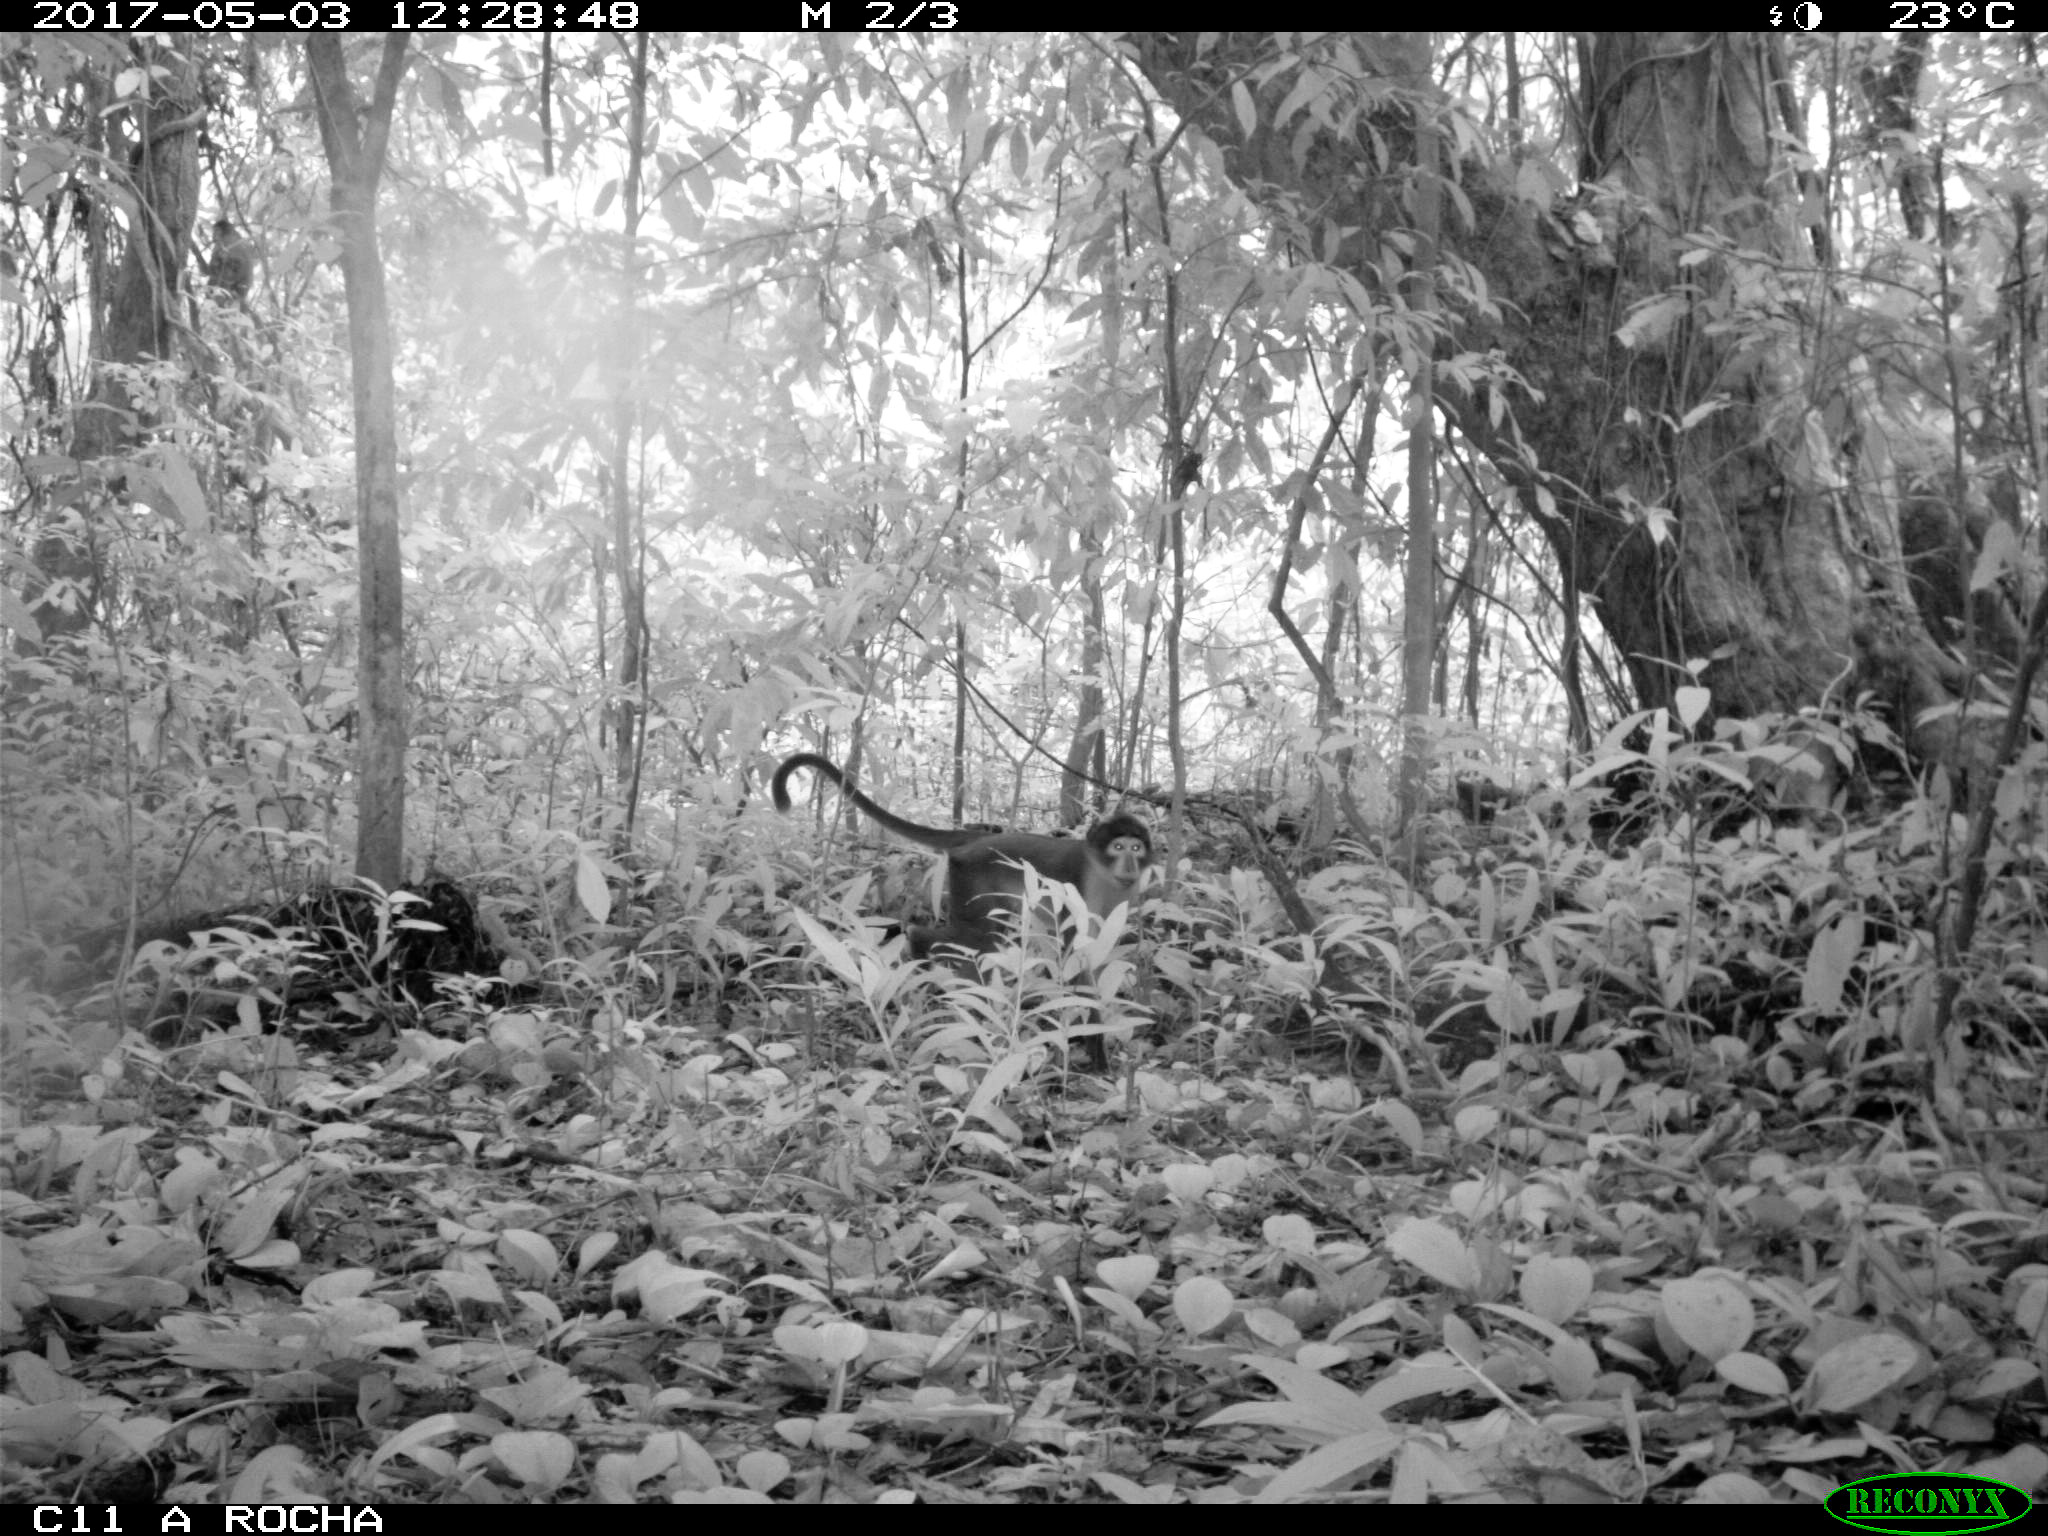 White-naped Mangabey (Cercocebus lunulatus) caught on camera trap 2017-05-03 Atewa Forest Ghana - (c) A Rocha International